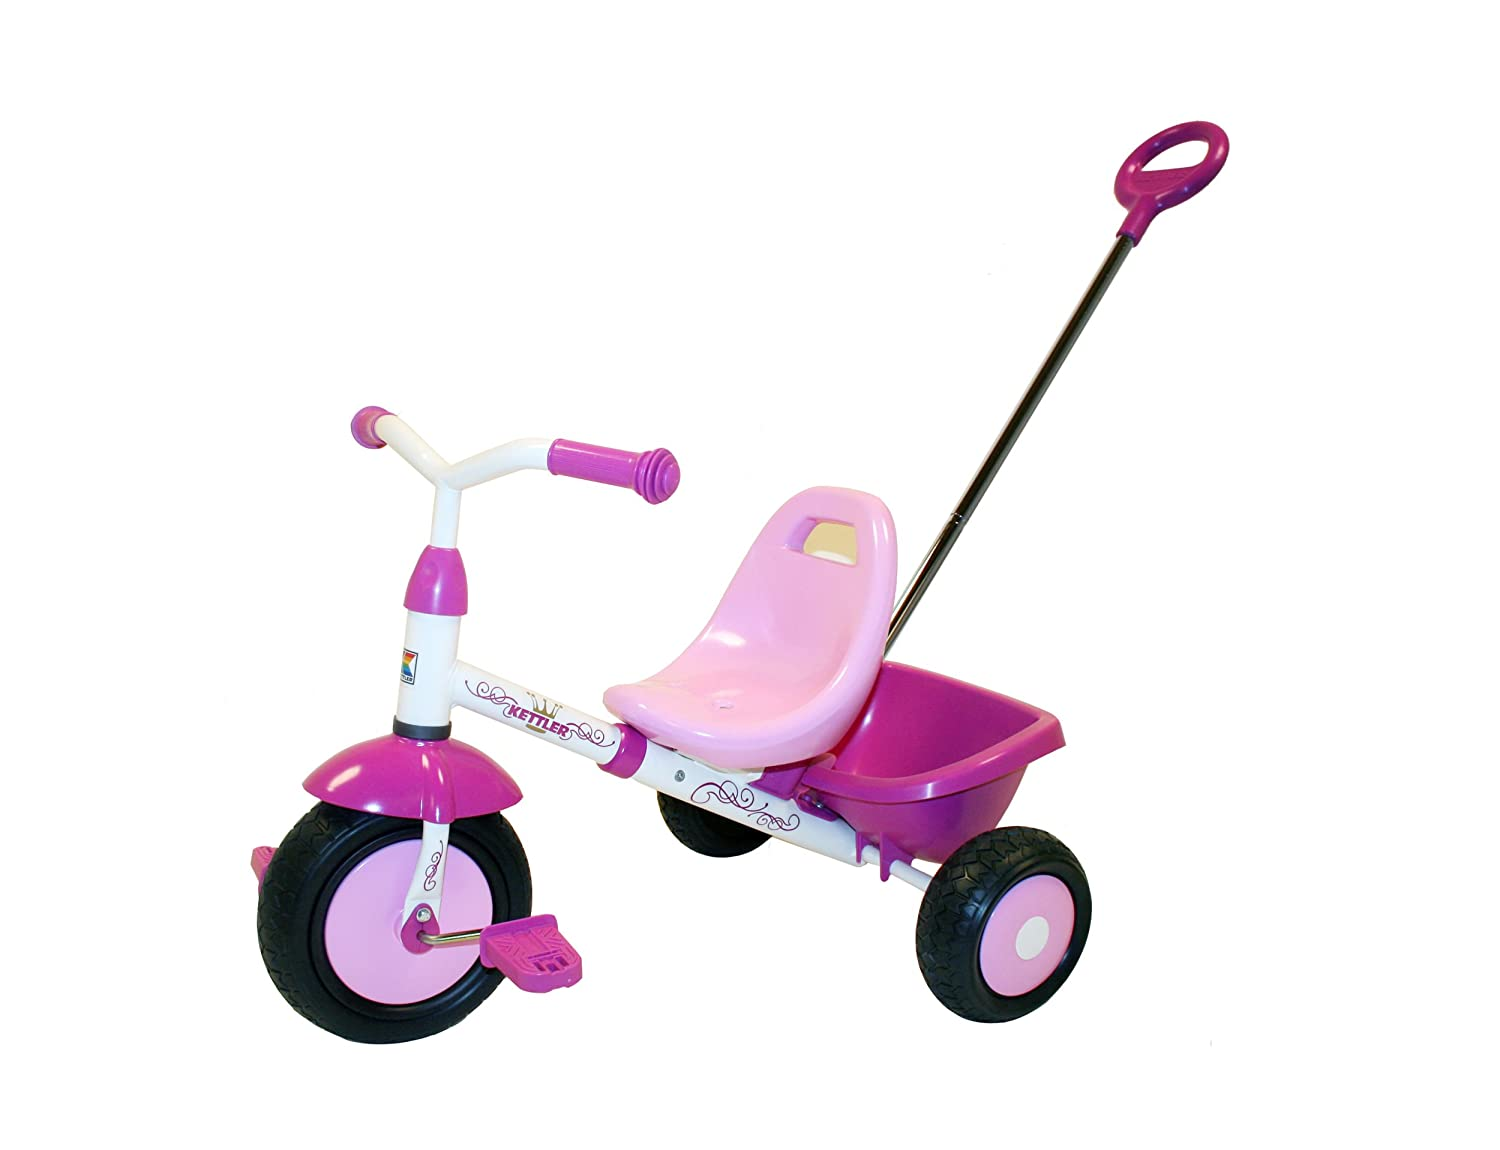 Kettler Kettrike Alana Tricycle With Pushbar Toys Games